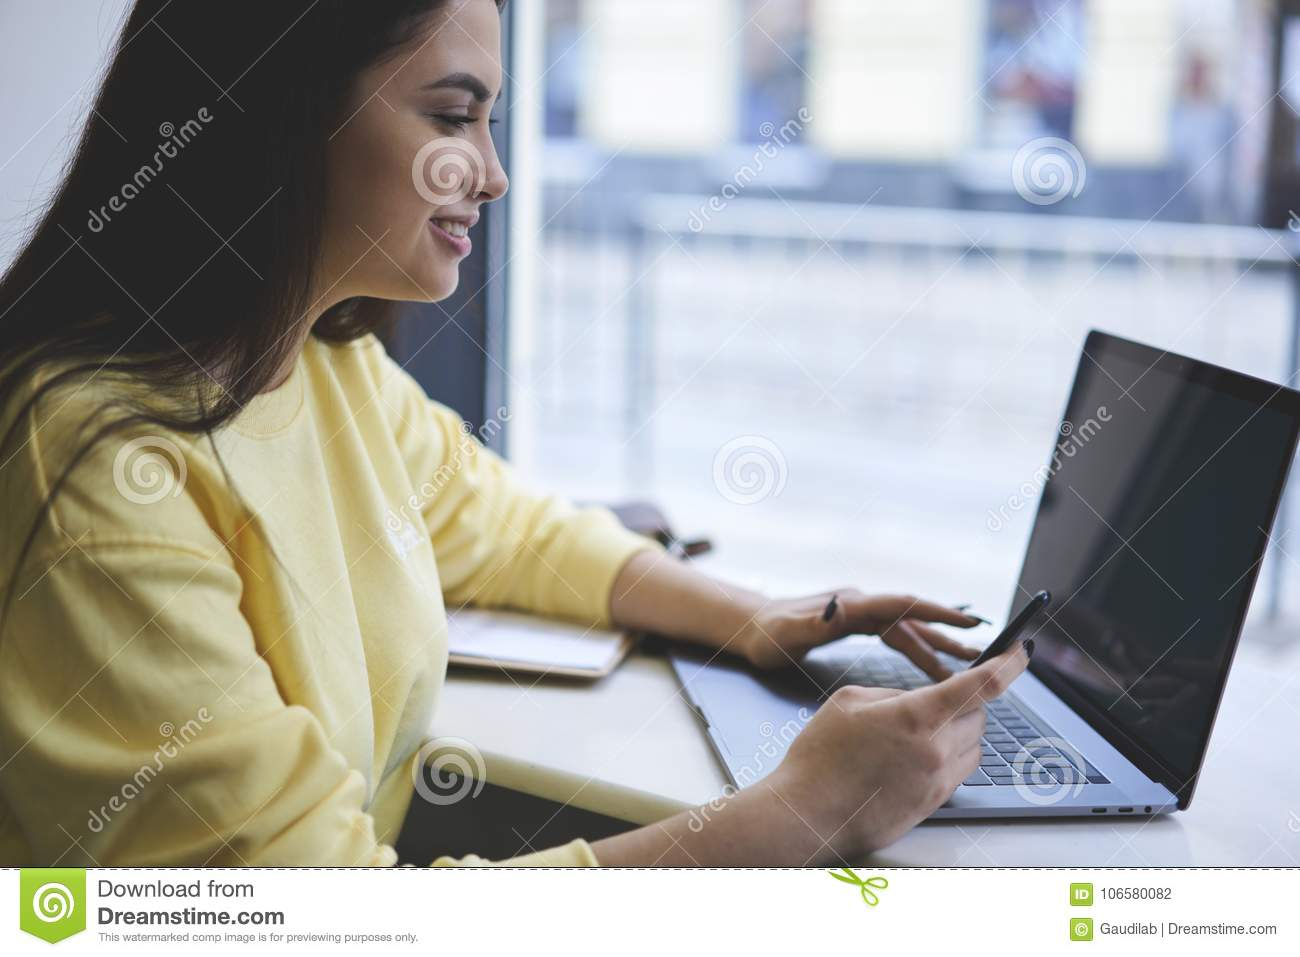 Young Hipster Girl Browsing Internet Via Portable Netbook And Modern Smartphone Sitting In Coffee Shop Stock Photo Image Of Application Journalist 106580082